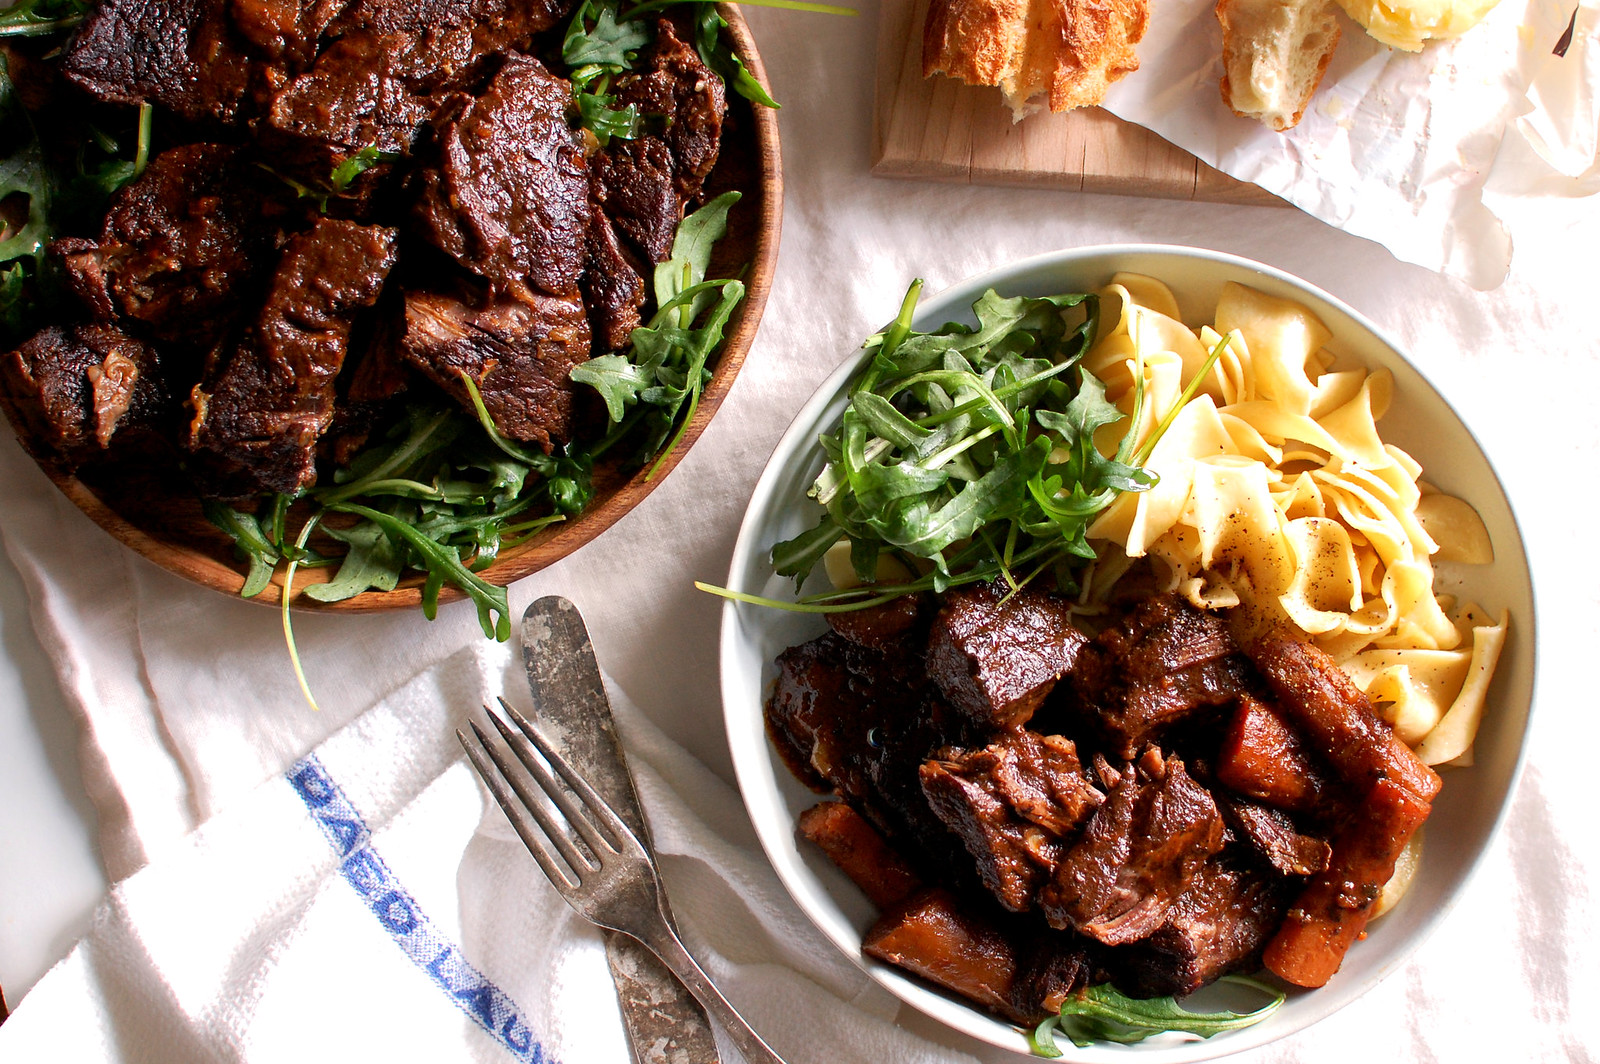 dish of tender red wine braised beef short ribs with noodles and salad